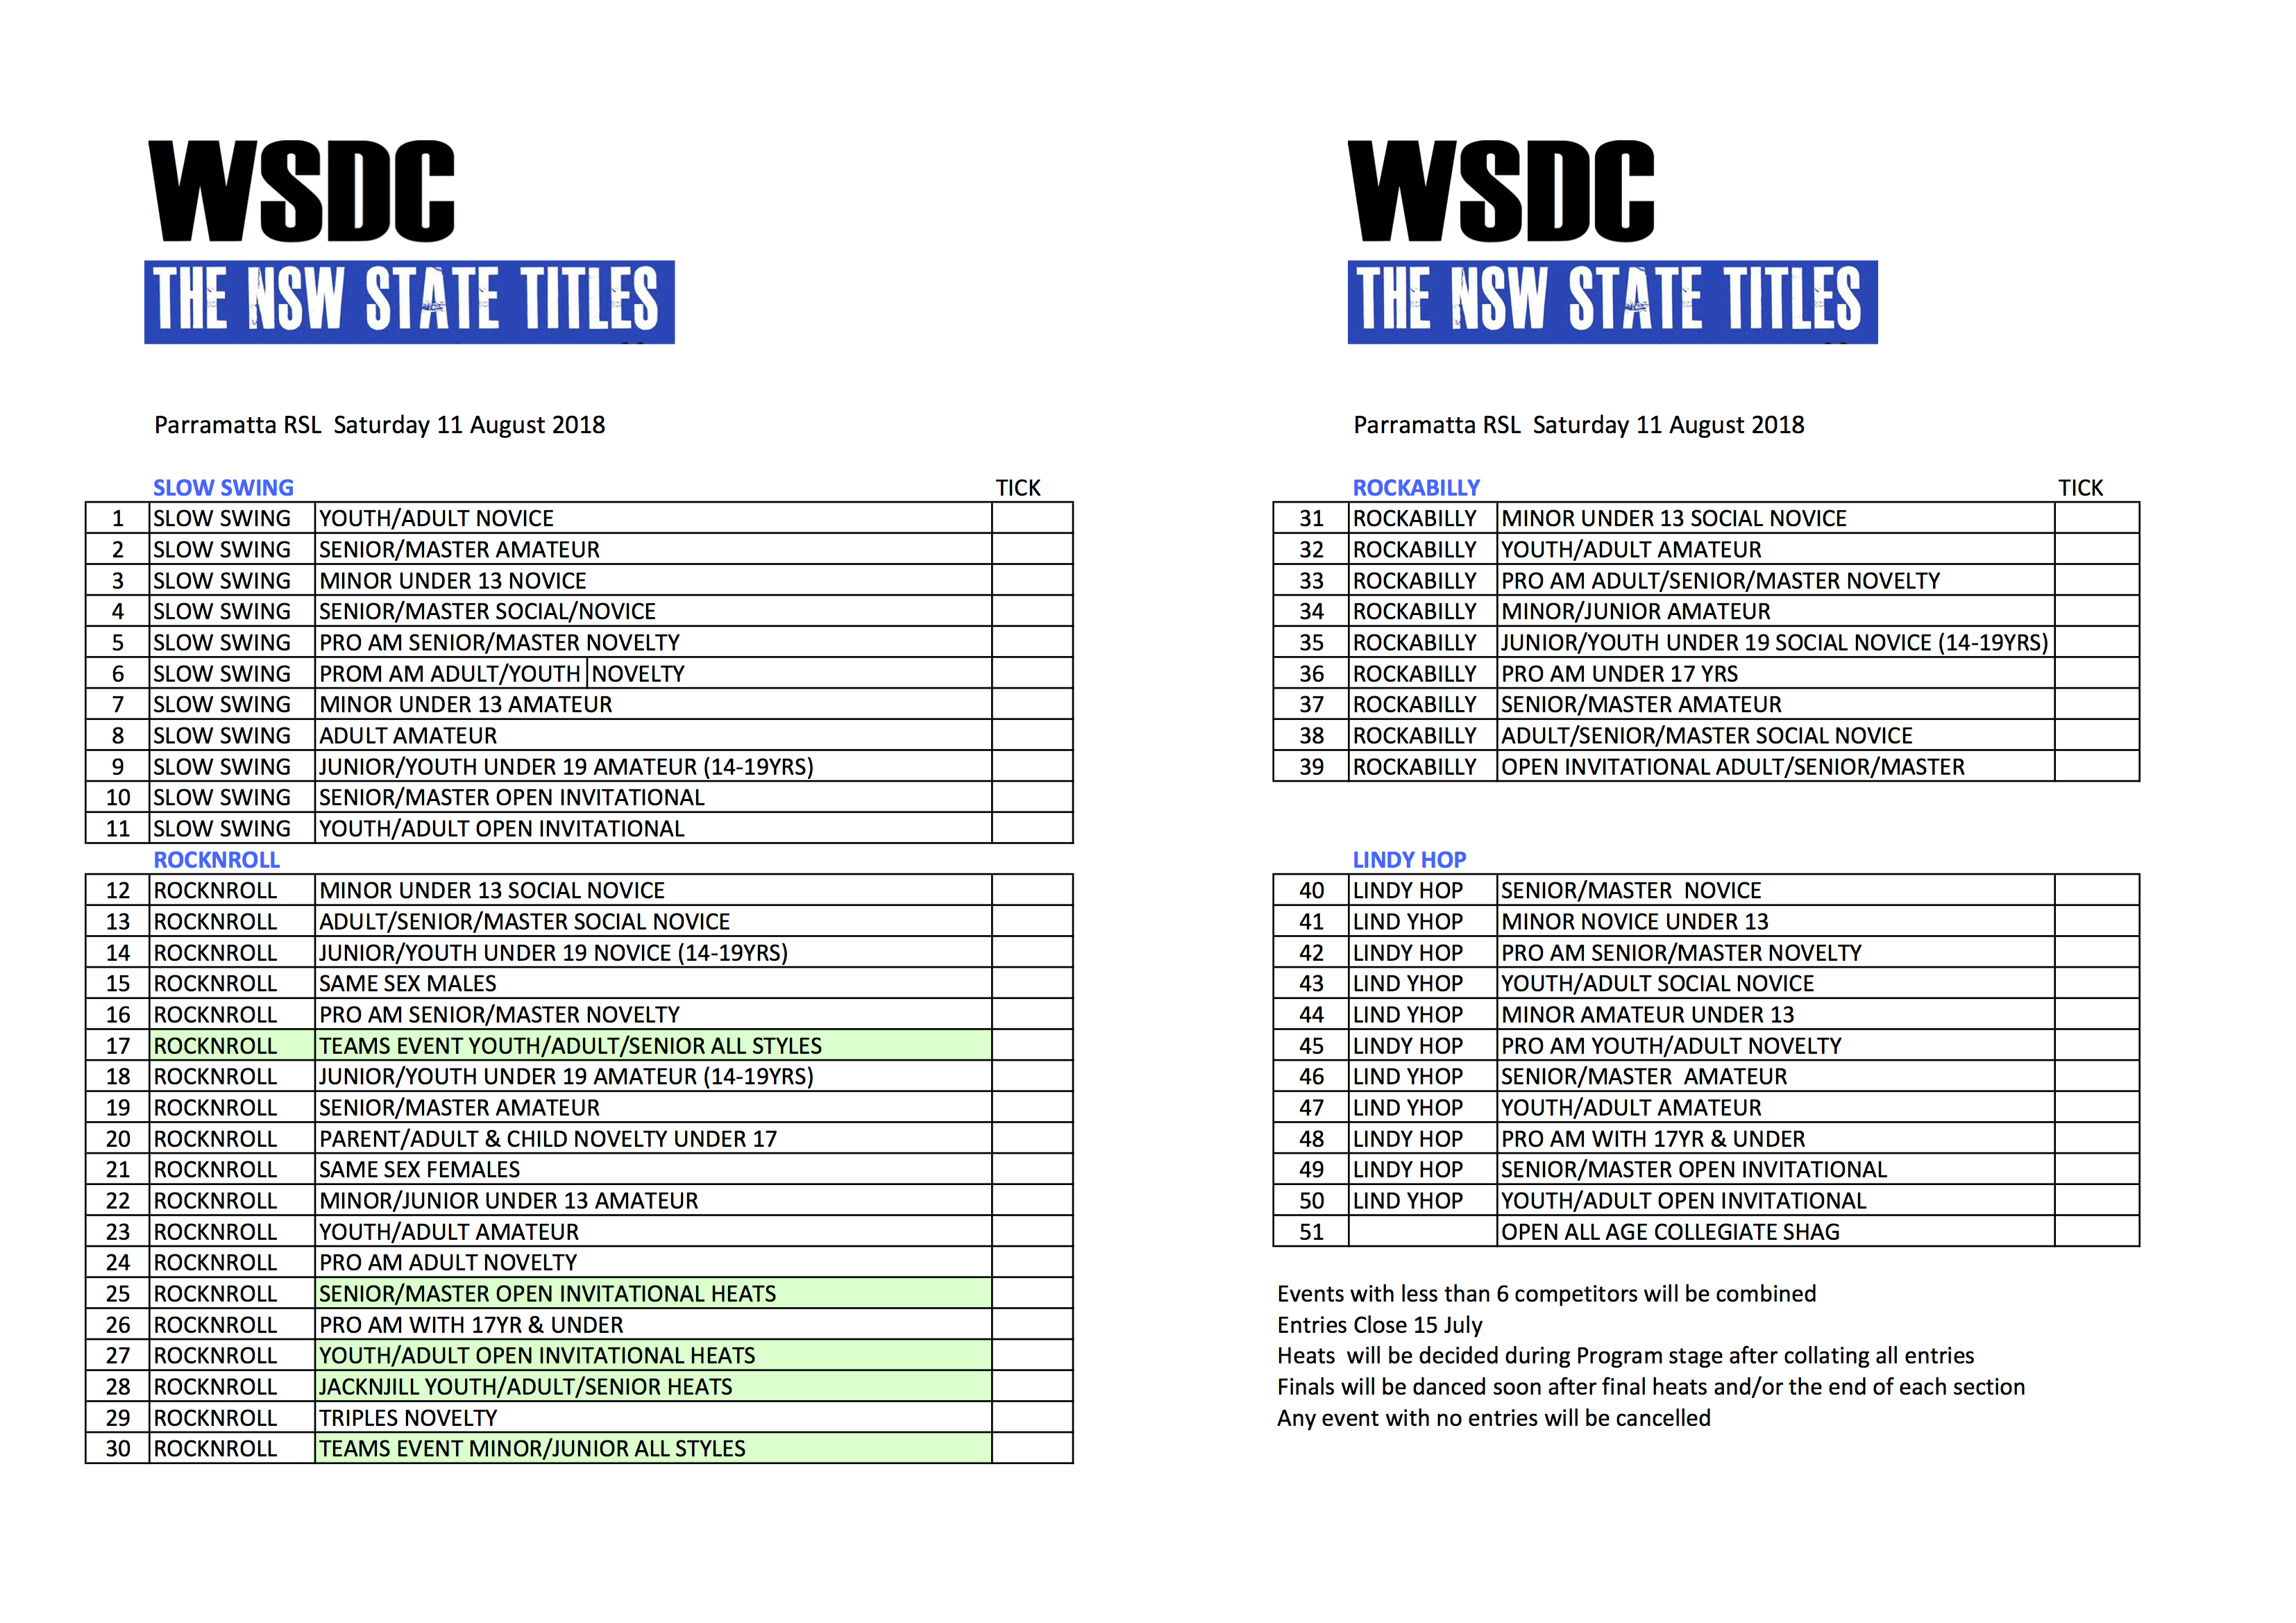 WSDC NSW STATE TITLES 2018